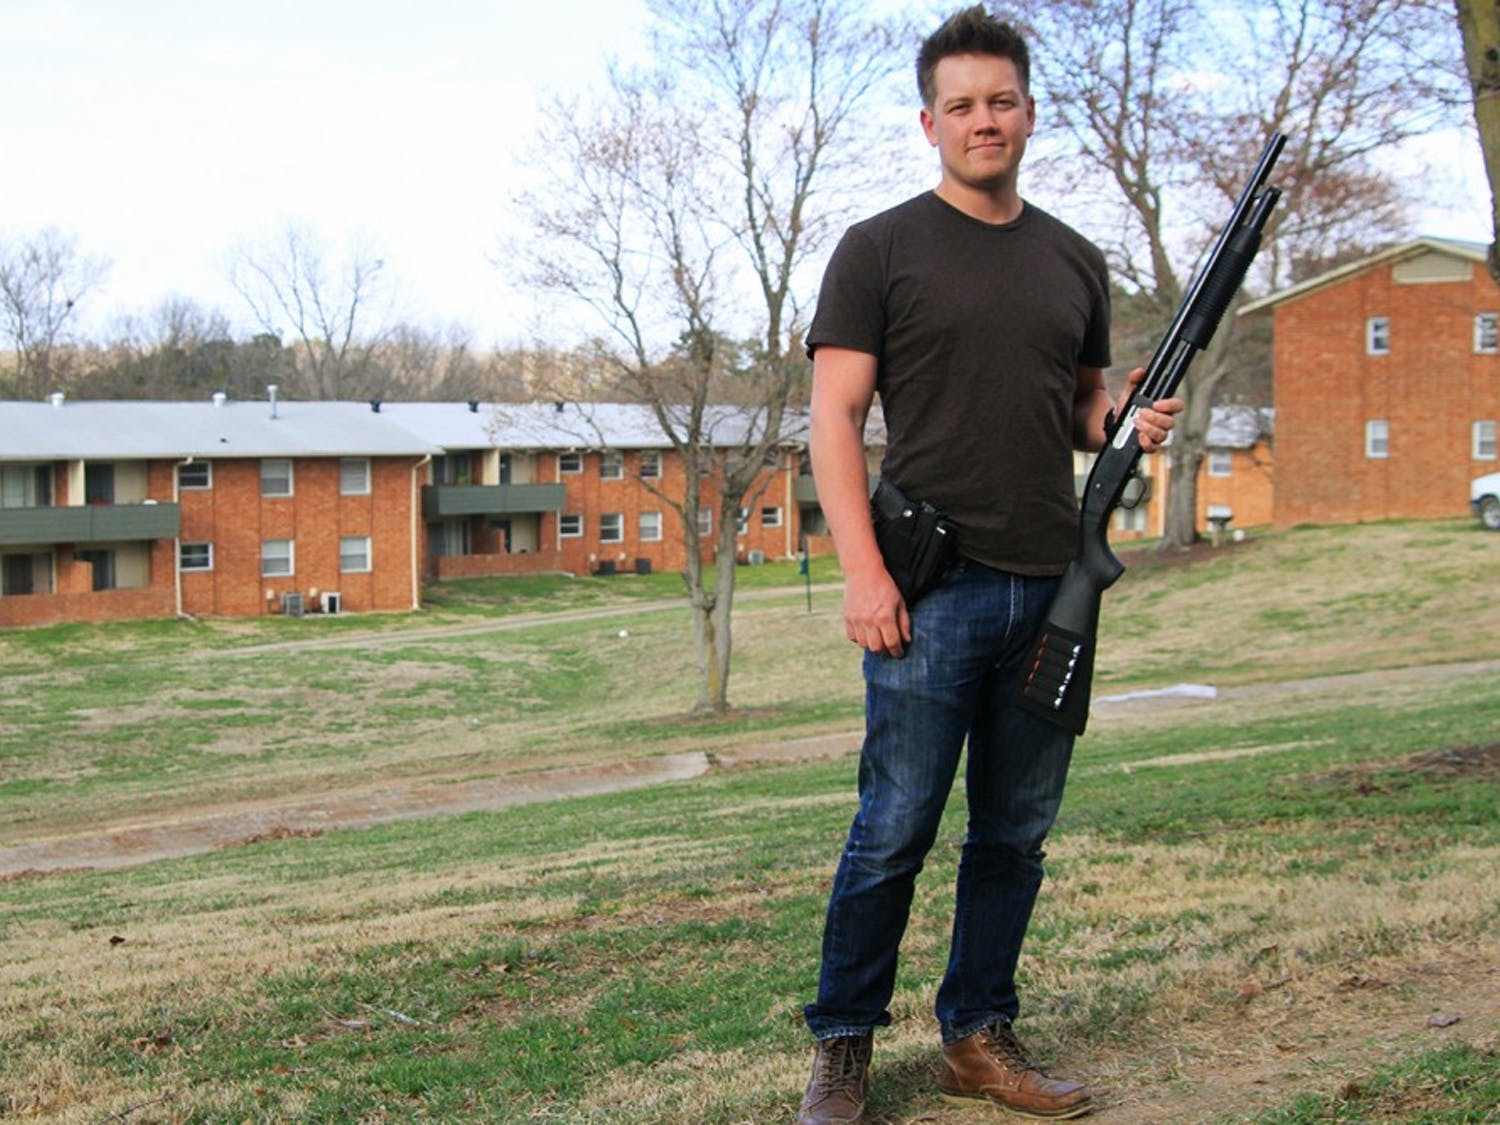 Senior mathematics major Thomas Rees holds his Mossberg 88 shotgun outside his apartment.